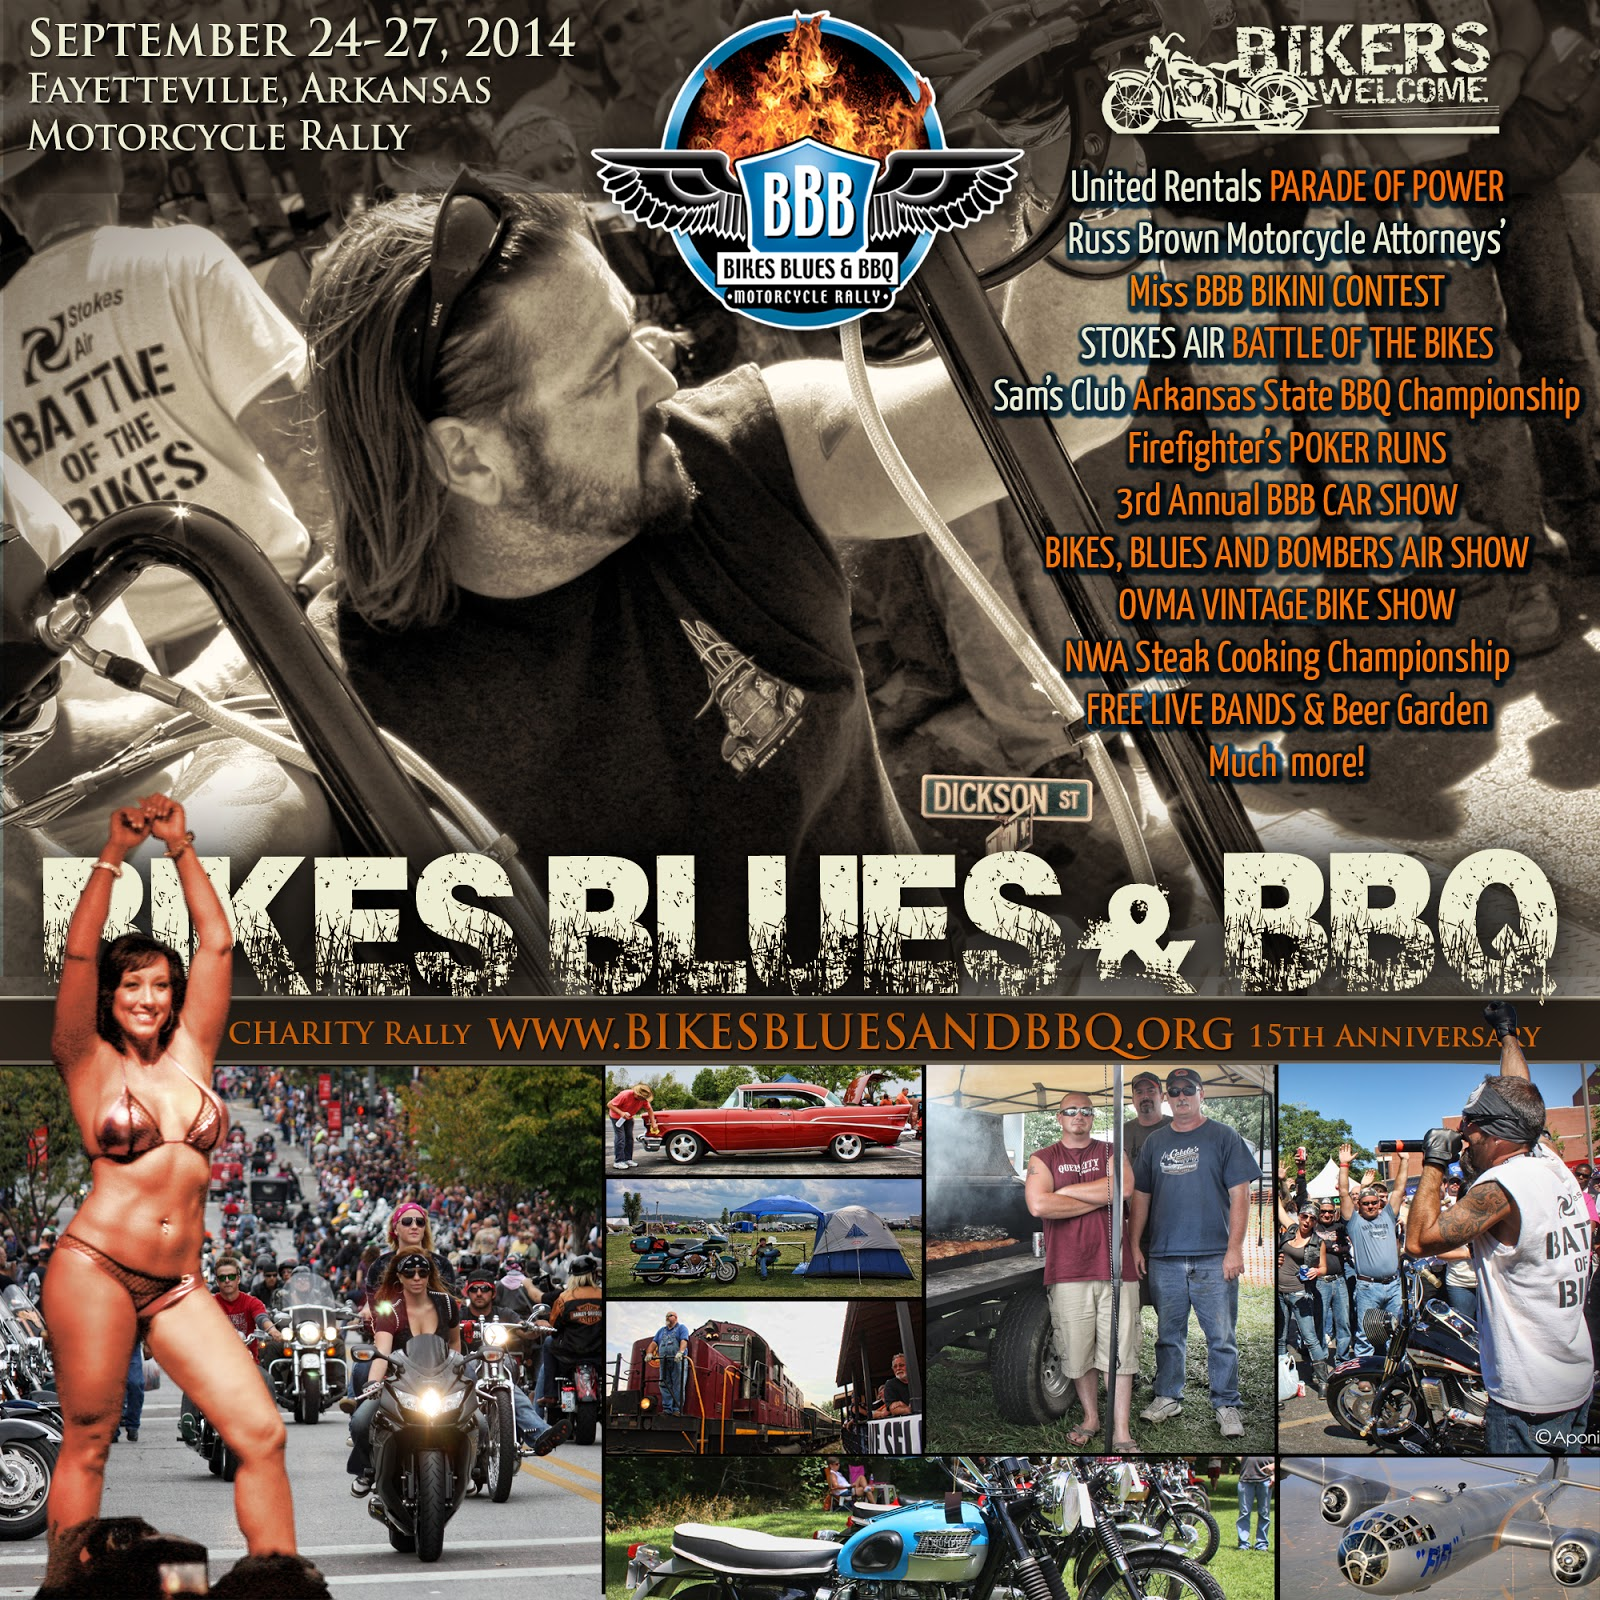 Bikes Blues Bbq 2014 Bikes Blues and BBQ Events